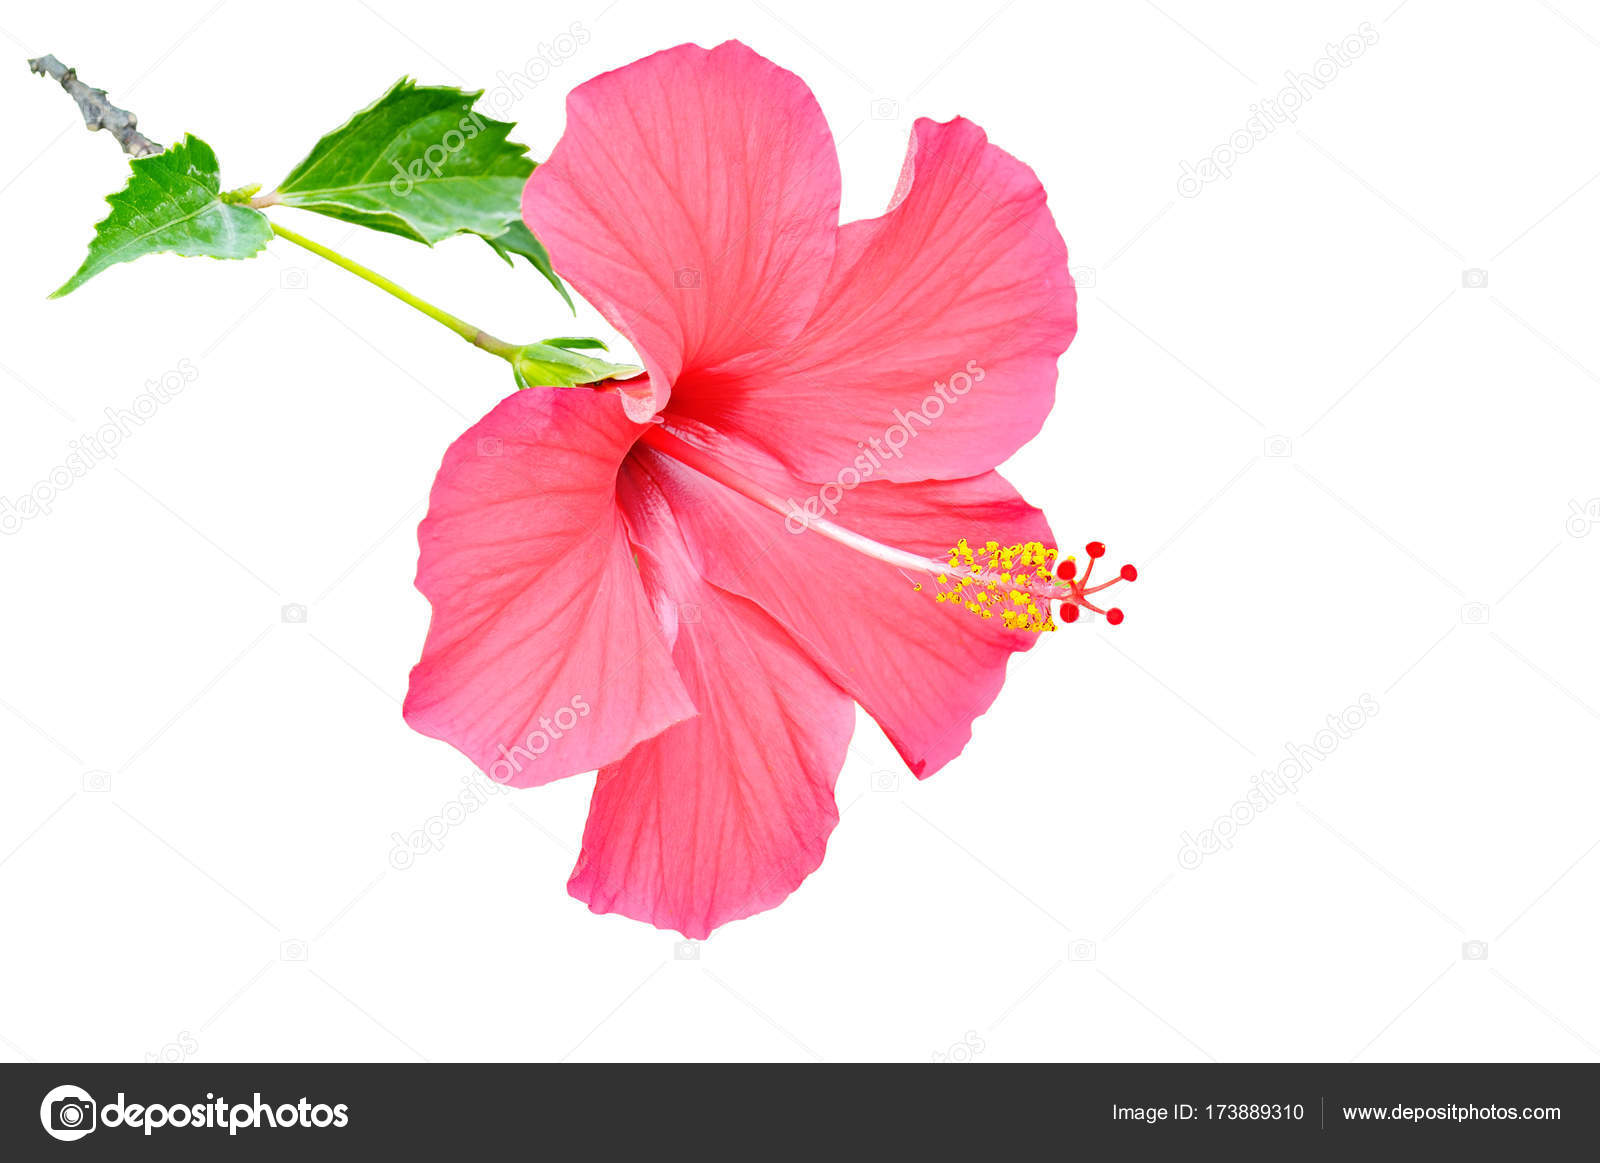 Hibiscus flower isolated on white background free space for tex hibiscus flower isolated on white background free space for tex stock photo izmirmasajfo